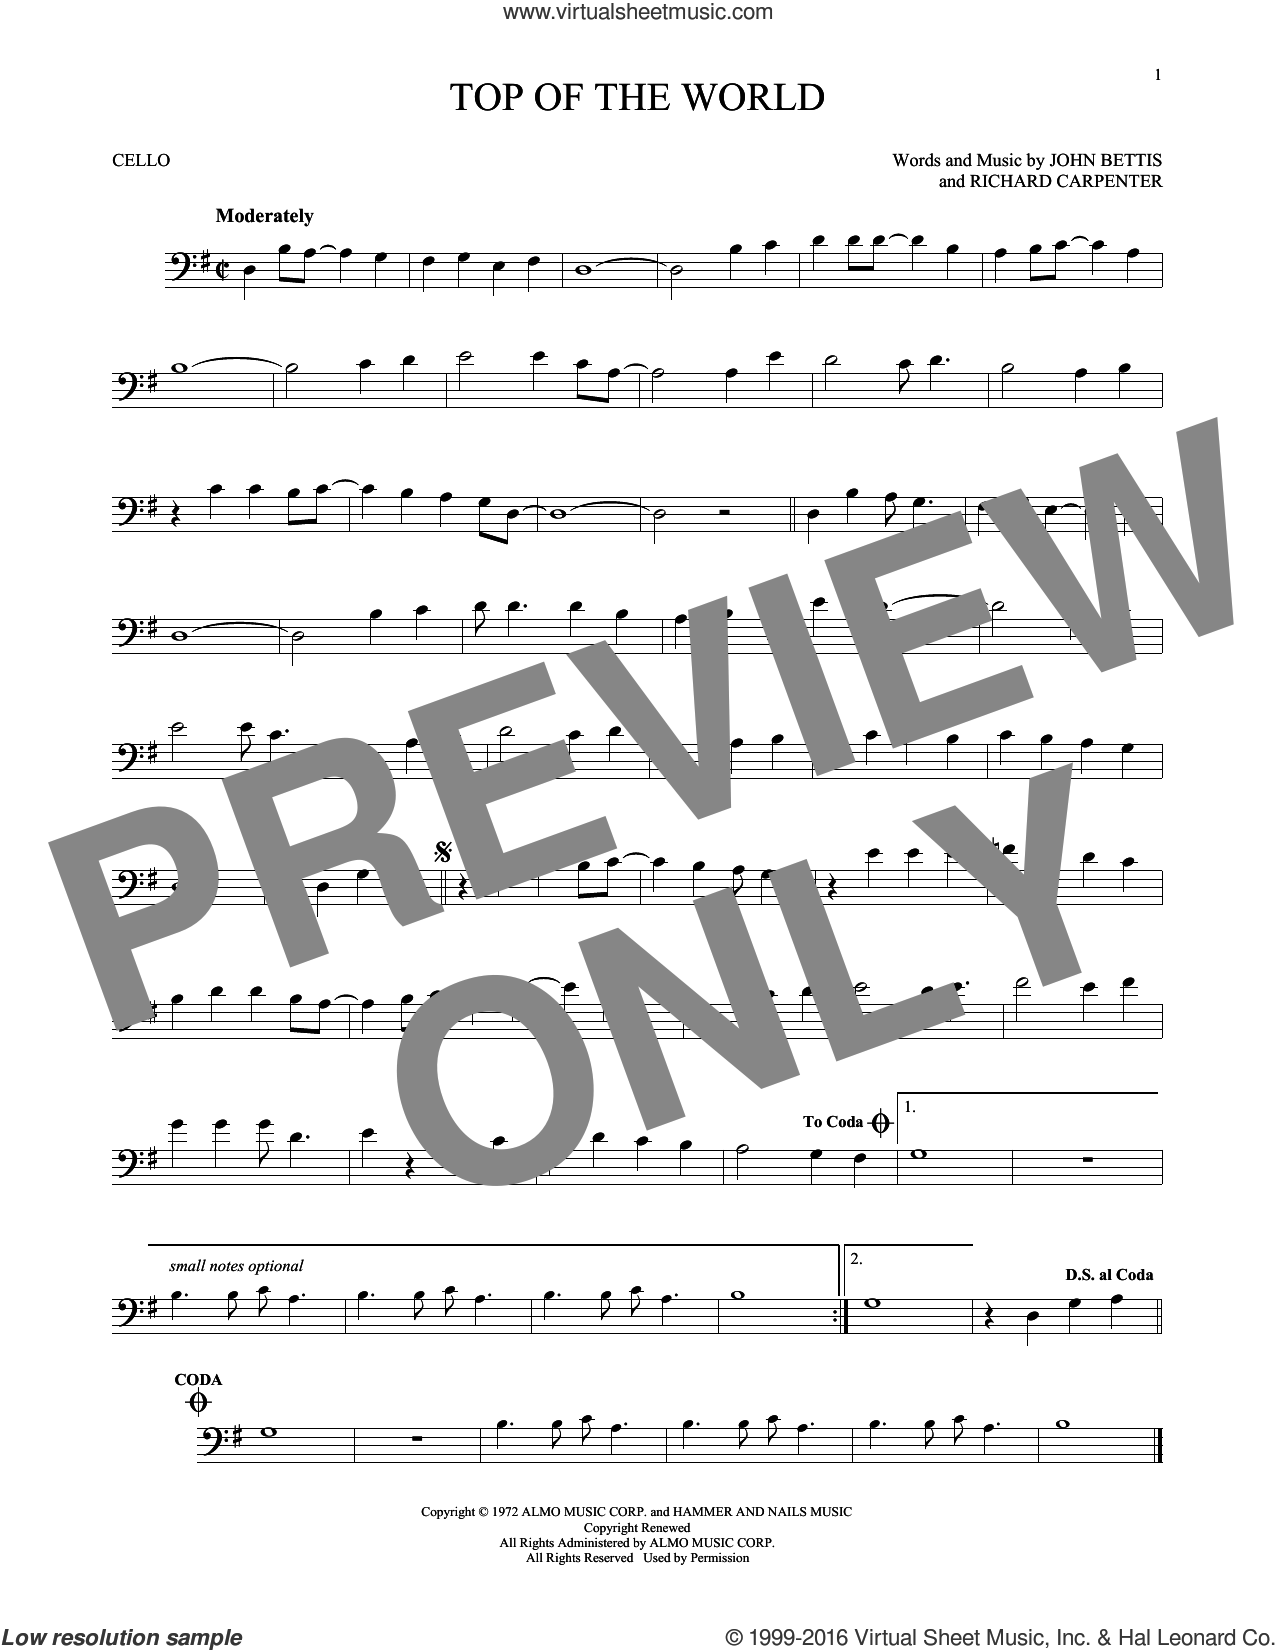 Top Of The World sheet music for cello solo by John Bettis, Carpenters and Richard Carpenter, intermediate skill level